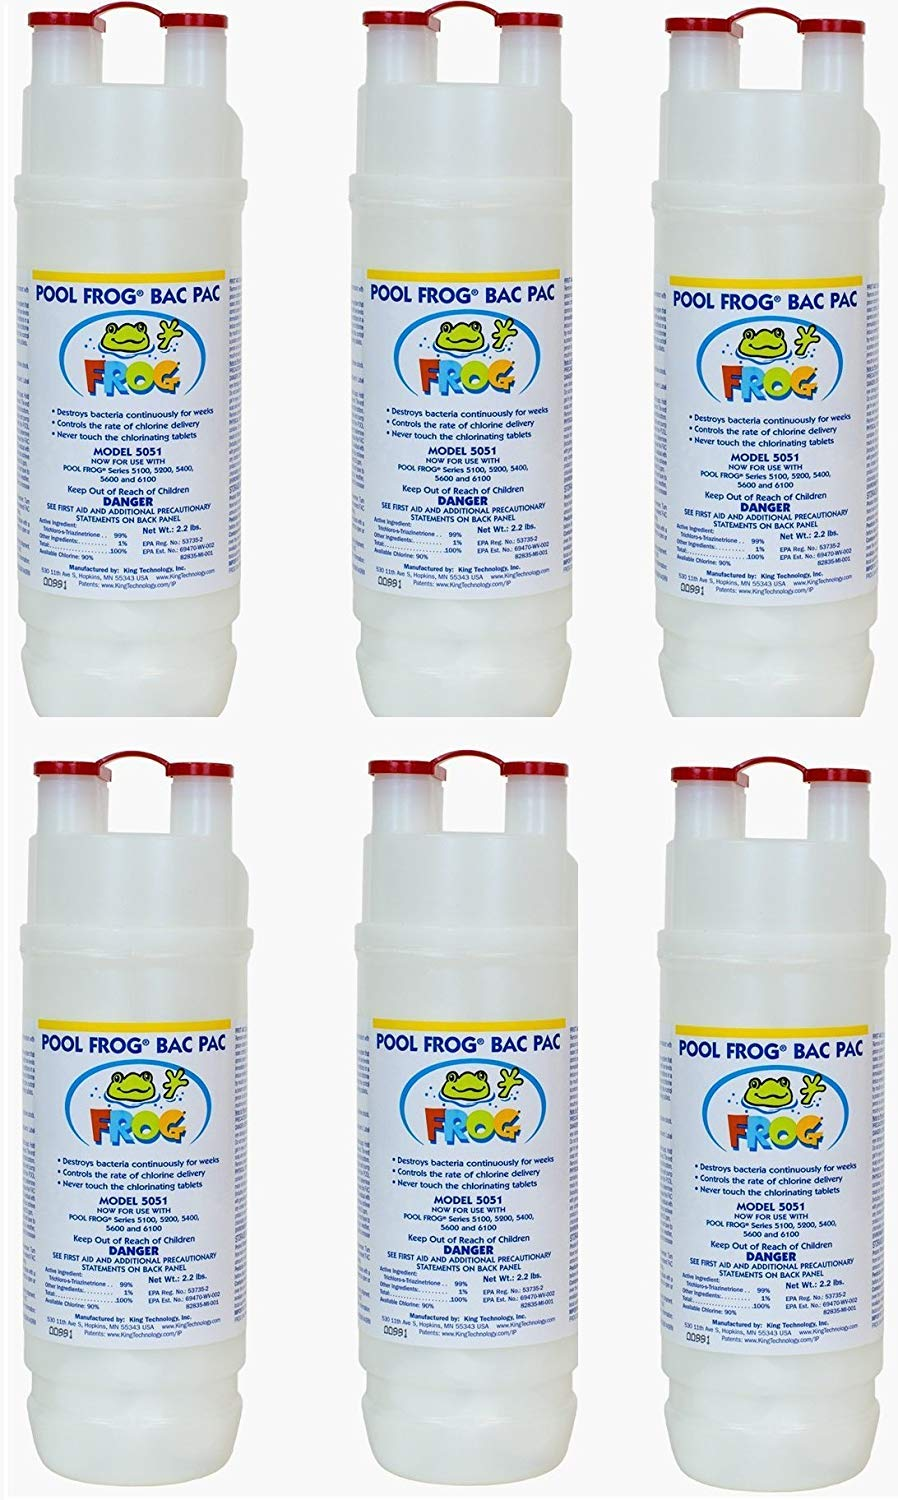 King Technology Pool Frog Mineral Purifier Replacement Chlorine Bac Pac - 6 Pack by King Technology